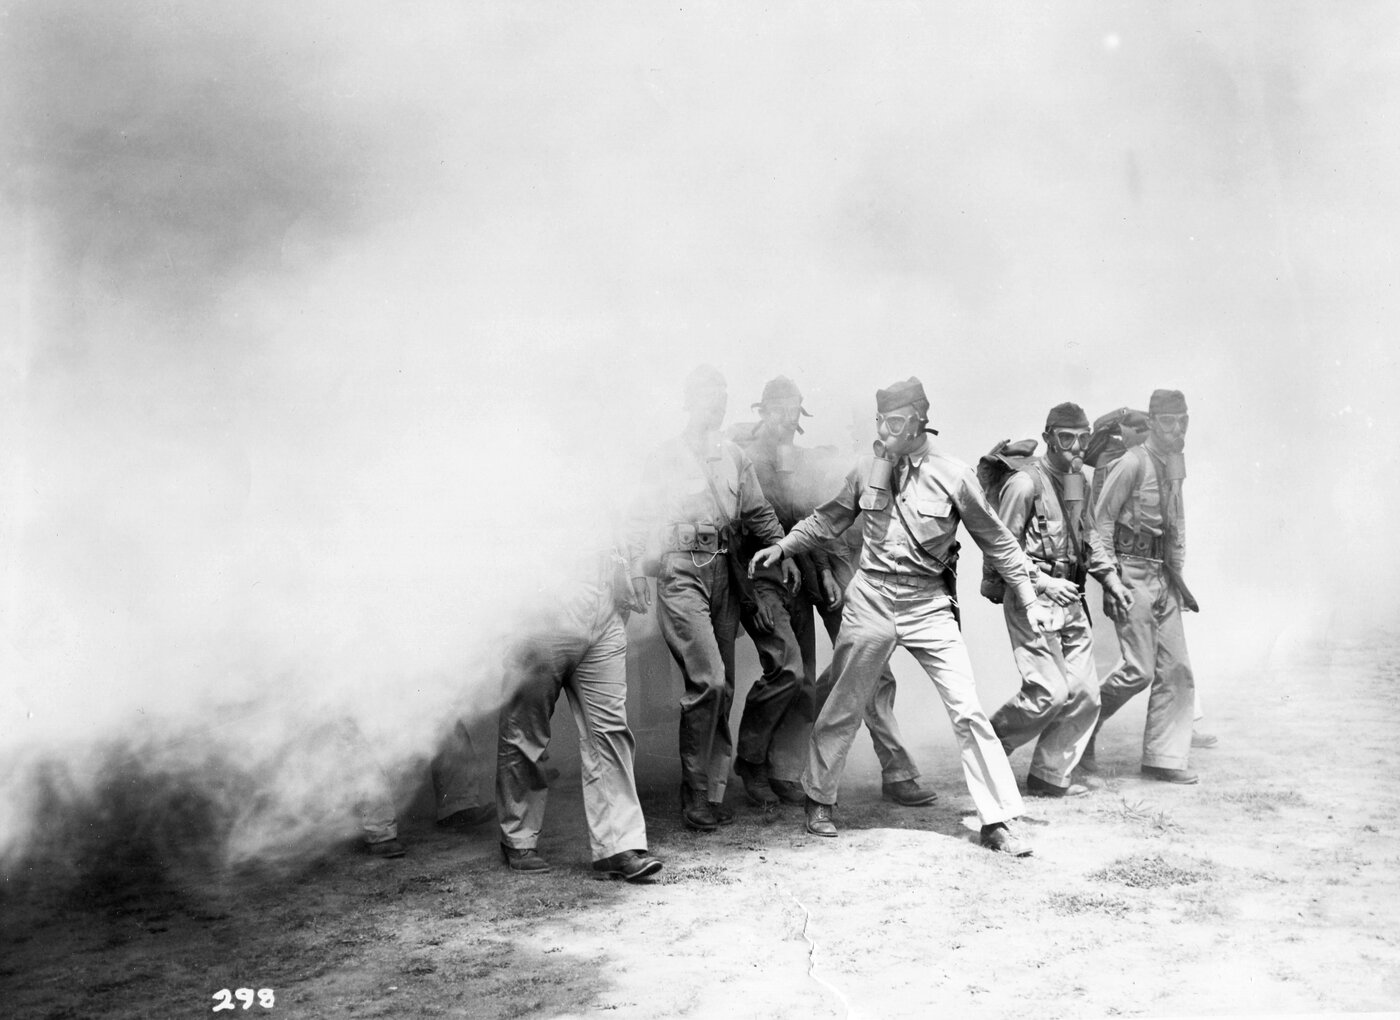 U.S. troops in Panama participate in a chemical warfare training exercise with smoke during World War II.